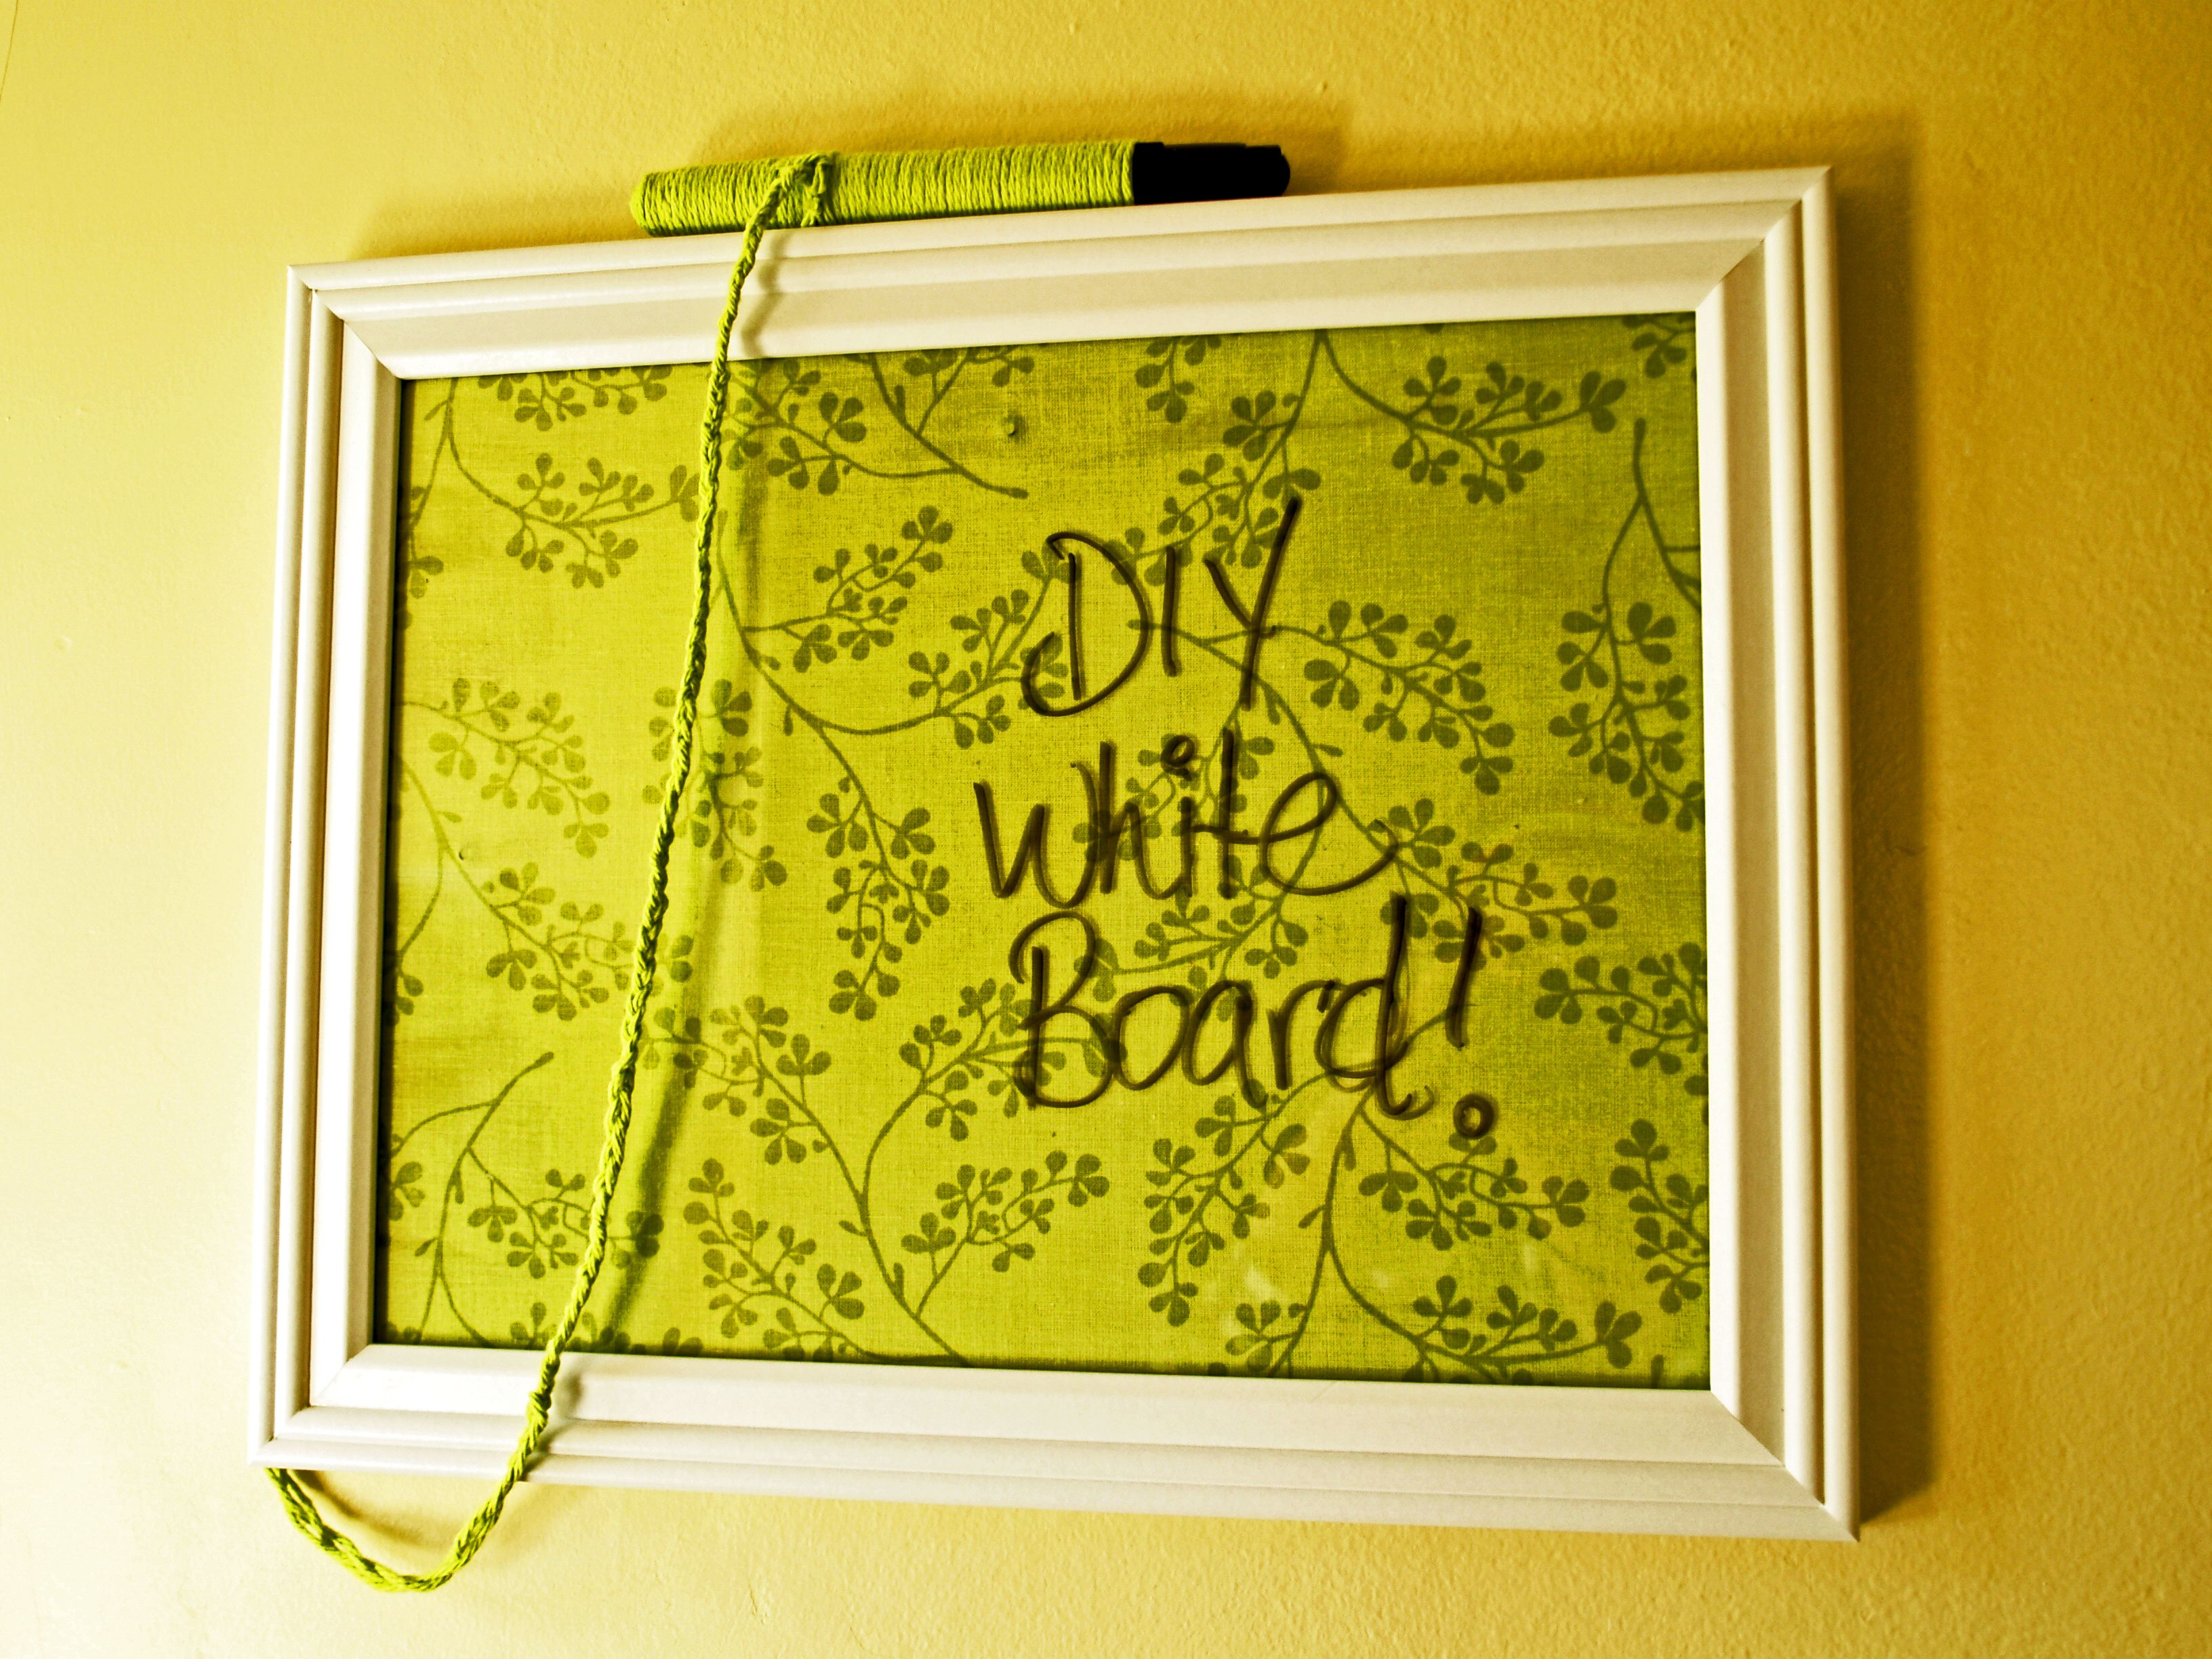 Framed Dry Erase Board Diy White Board Picture Frame Fabric Mod Podge Yarn And A